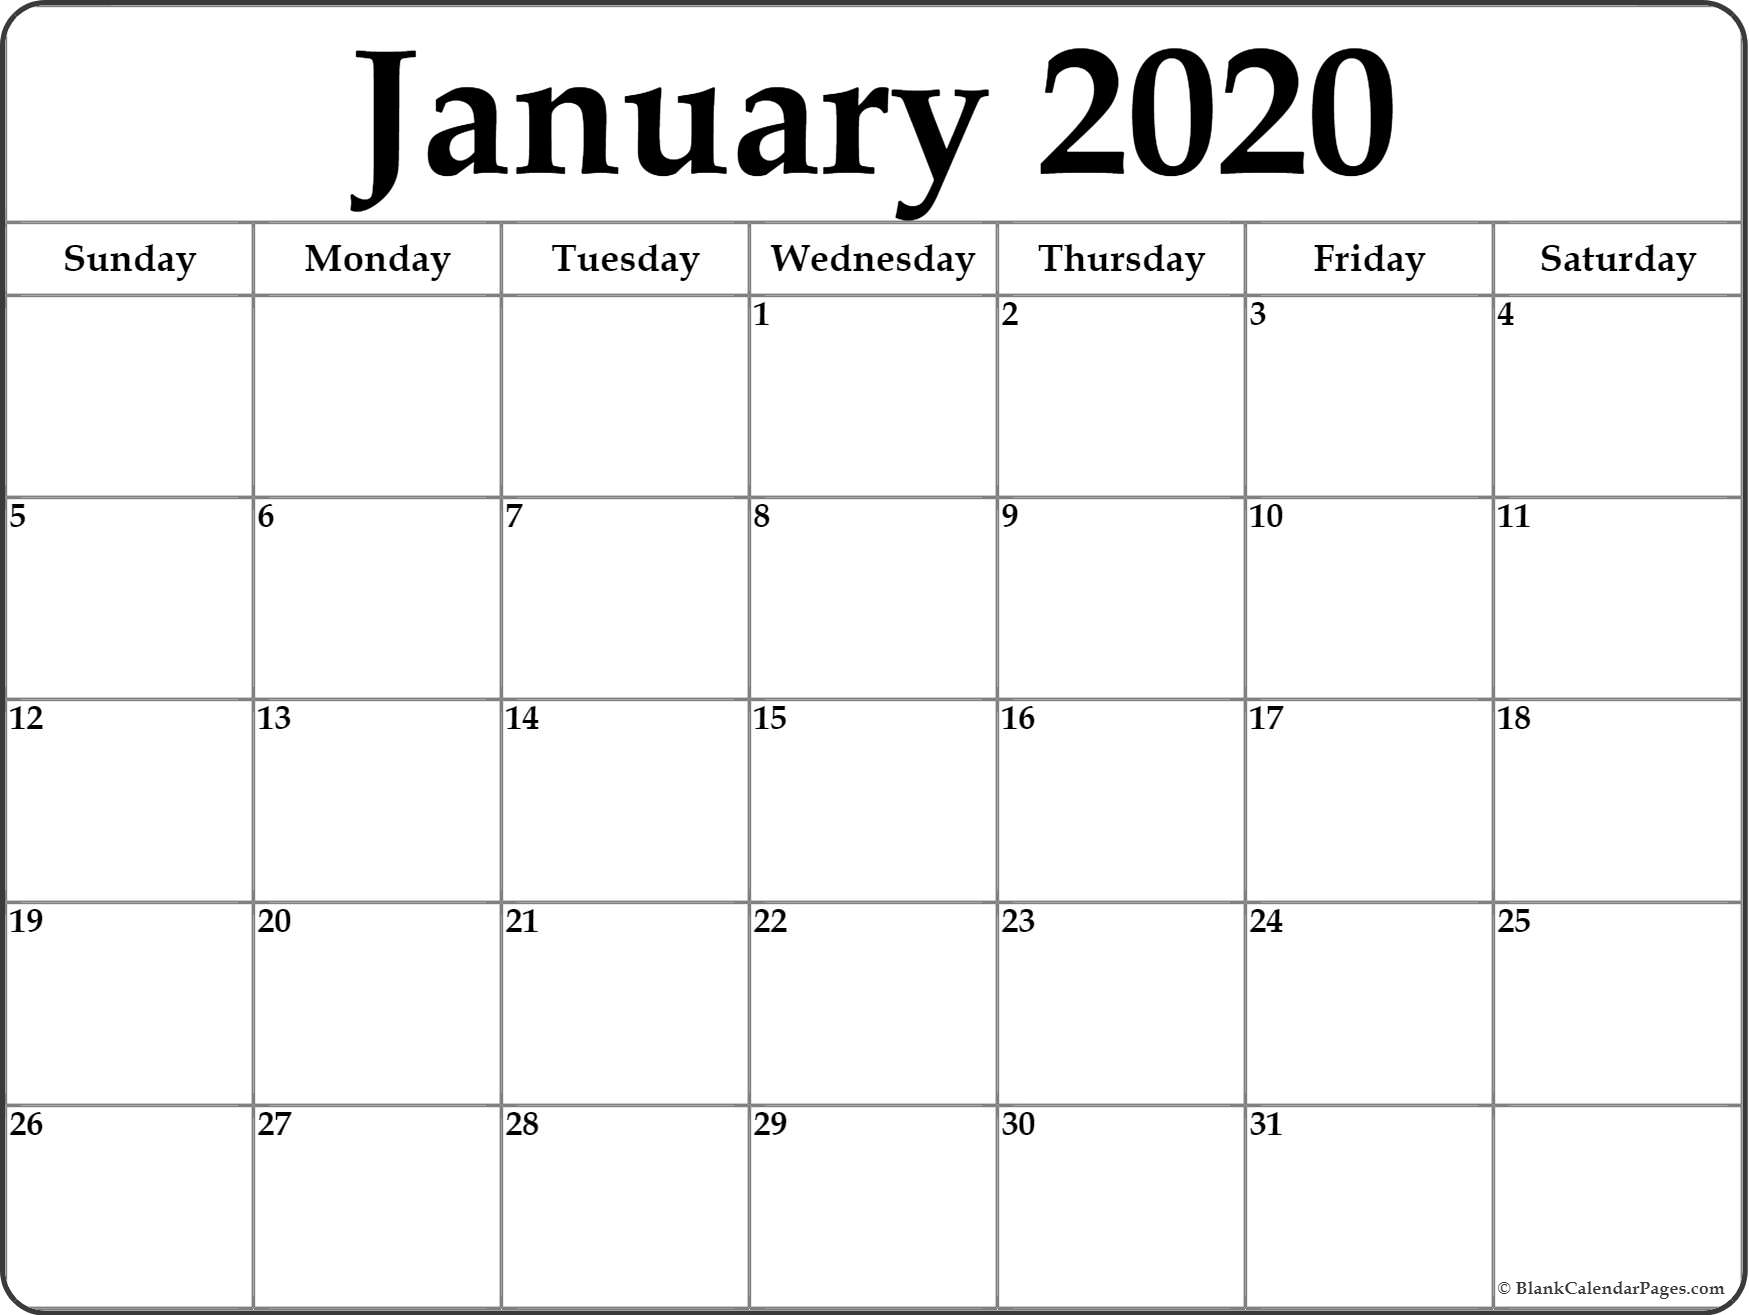 January 2020 Calendar | Free Printable Monthly Calendars inside Free Printable 2020 Calendars-Monthly